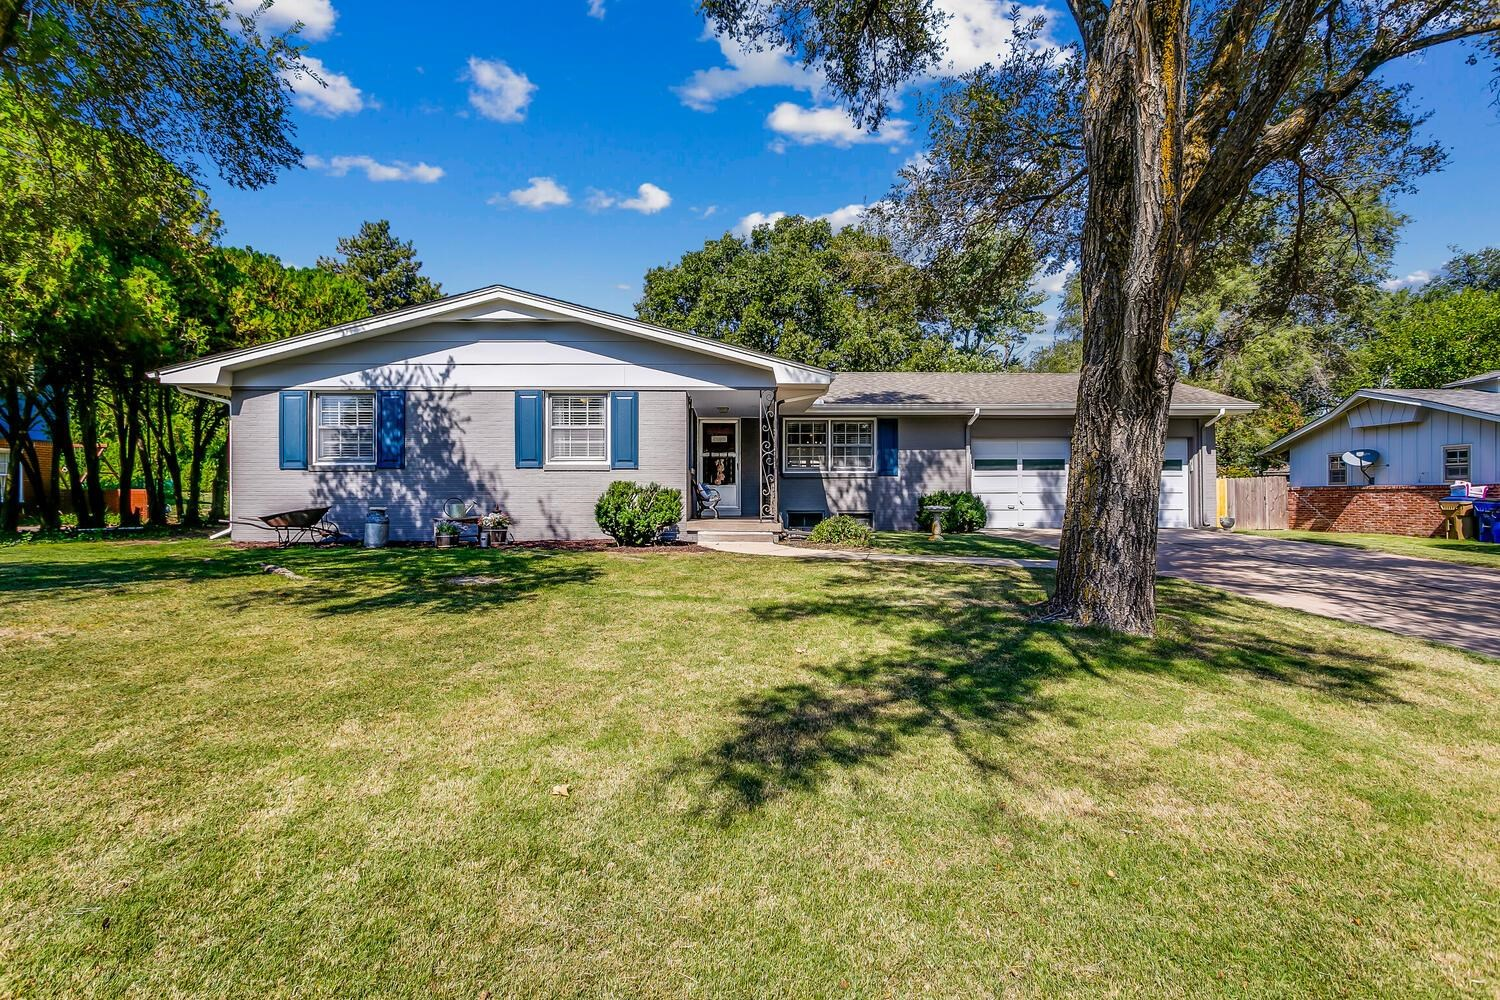 This one is a true charmer!!! Move in ready...3 bed, 1.5 bath ranch located in established Bel Aire